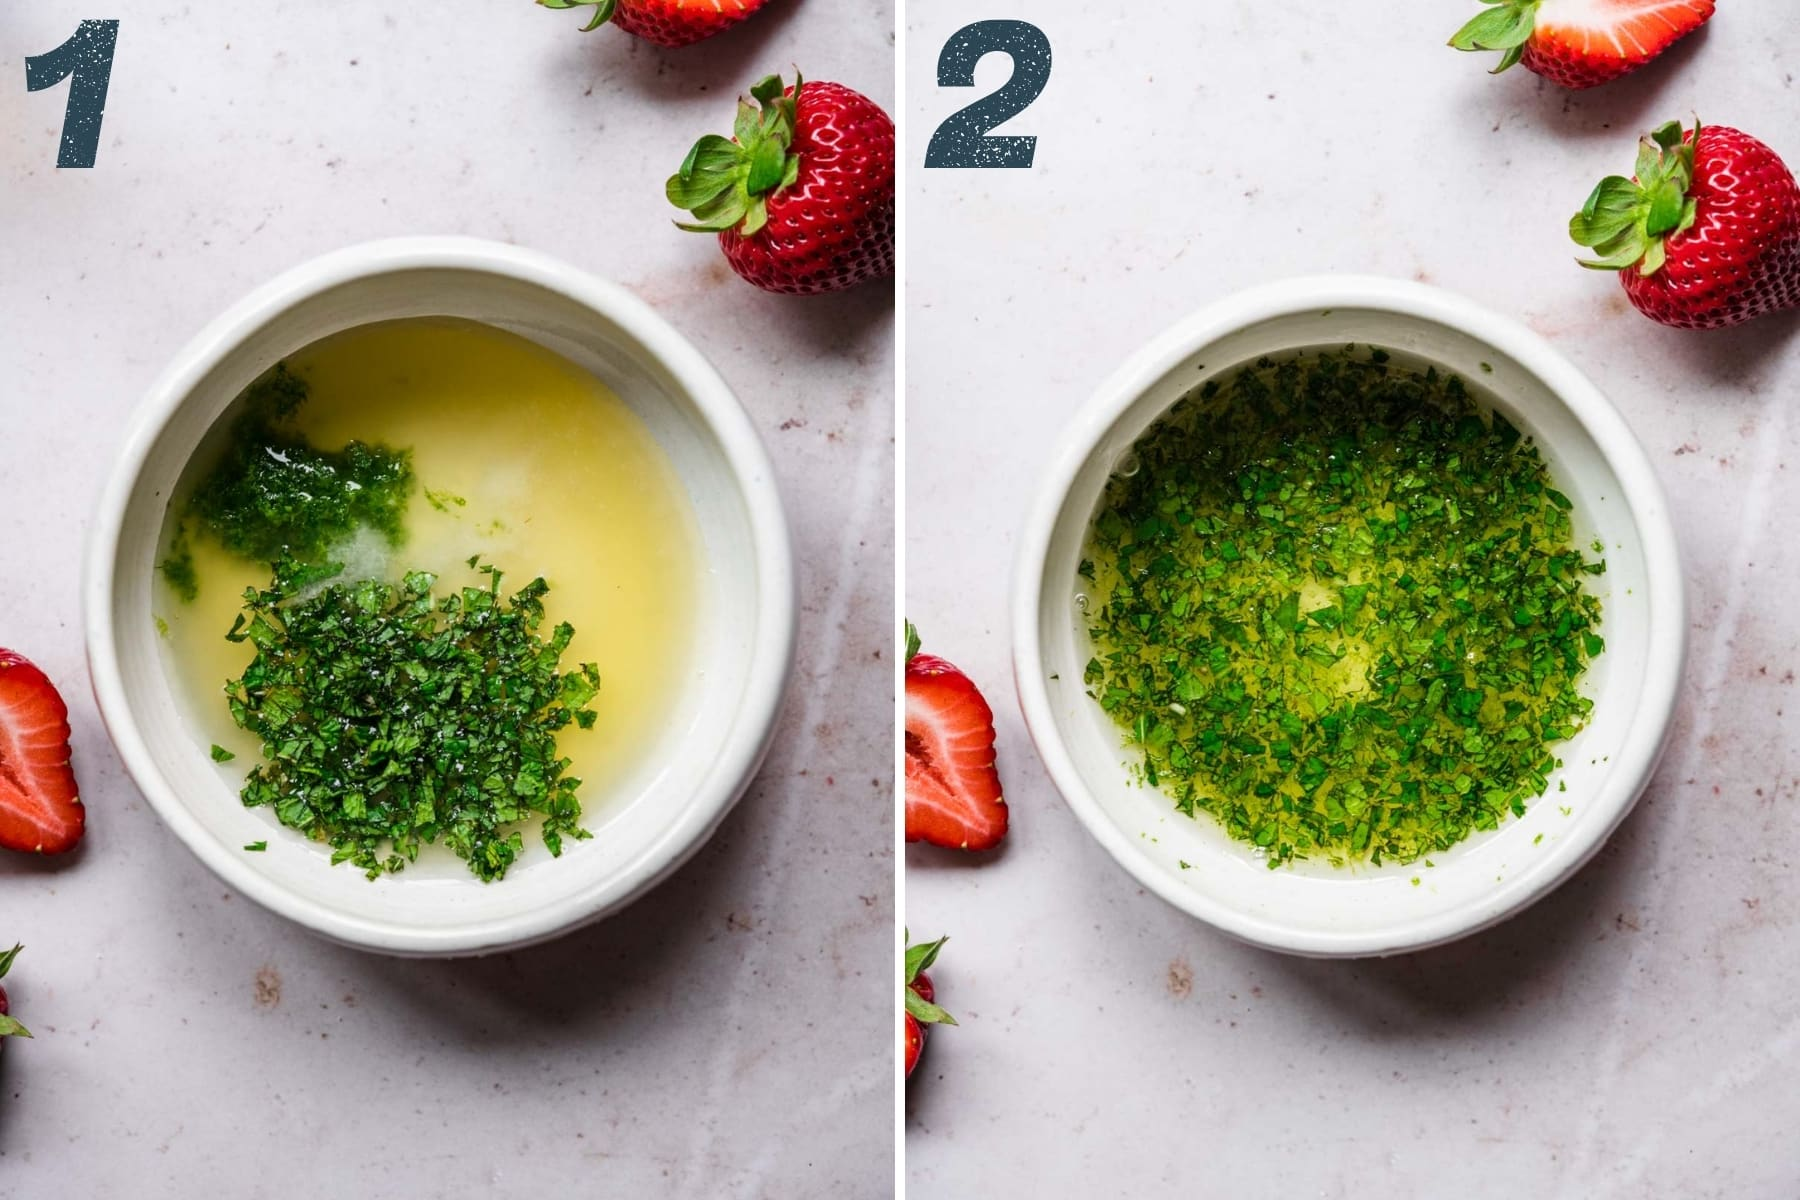 before and after whisking together ingredients for lime mint dressing.